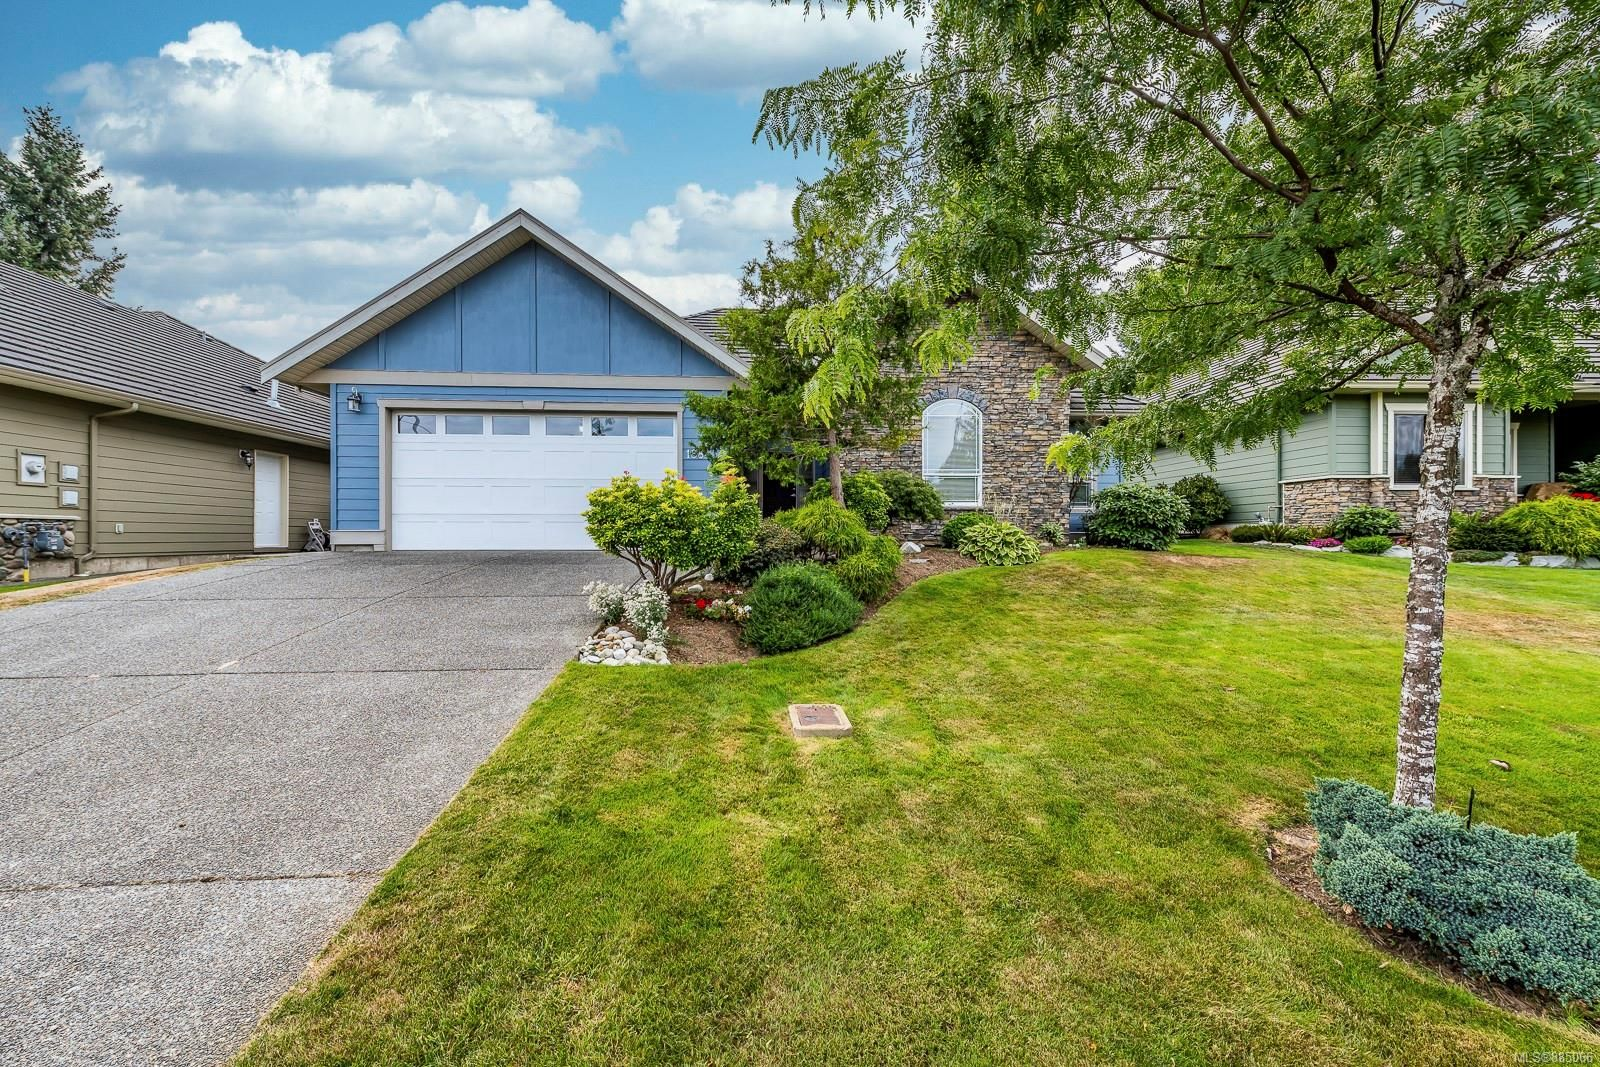 Main Photo: 1884 Sussex Dr in : CV Crown Isle House for sale (Comox Valley)  : MLS®# 885066